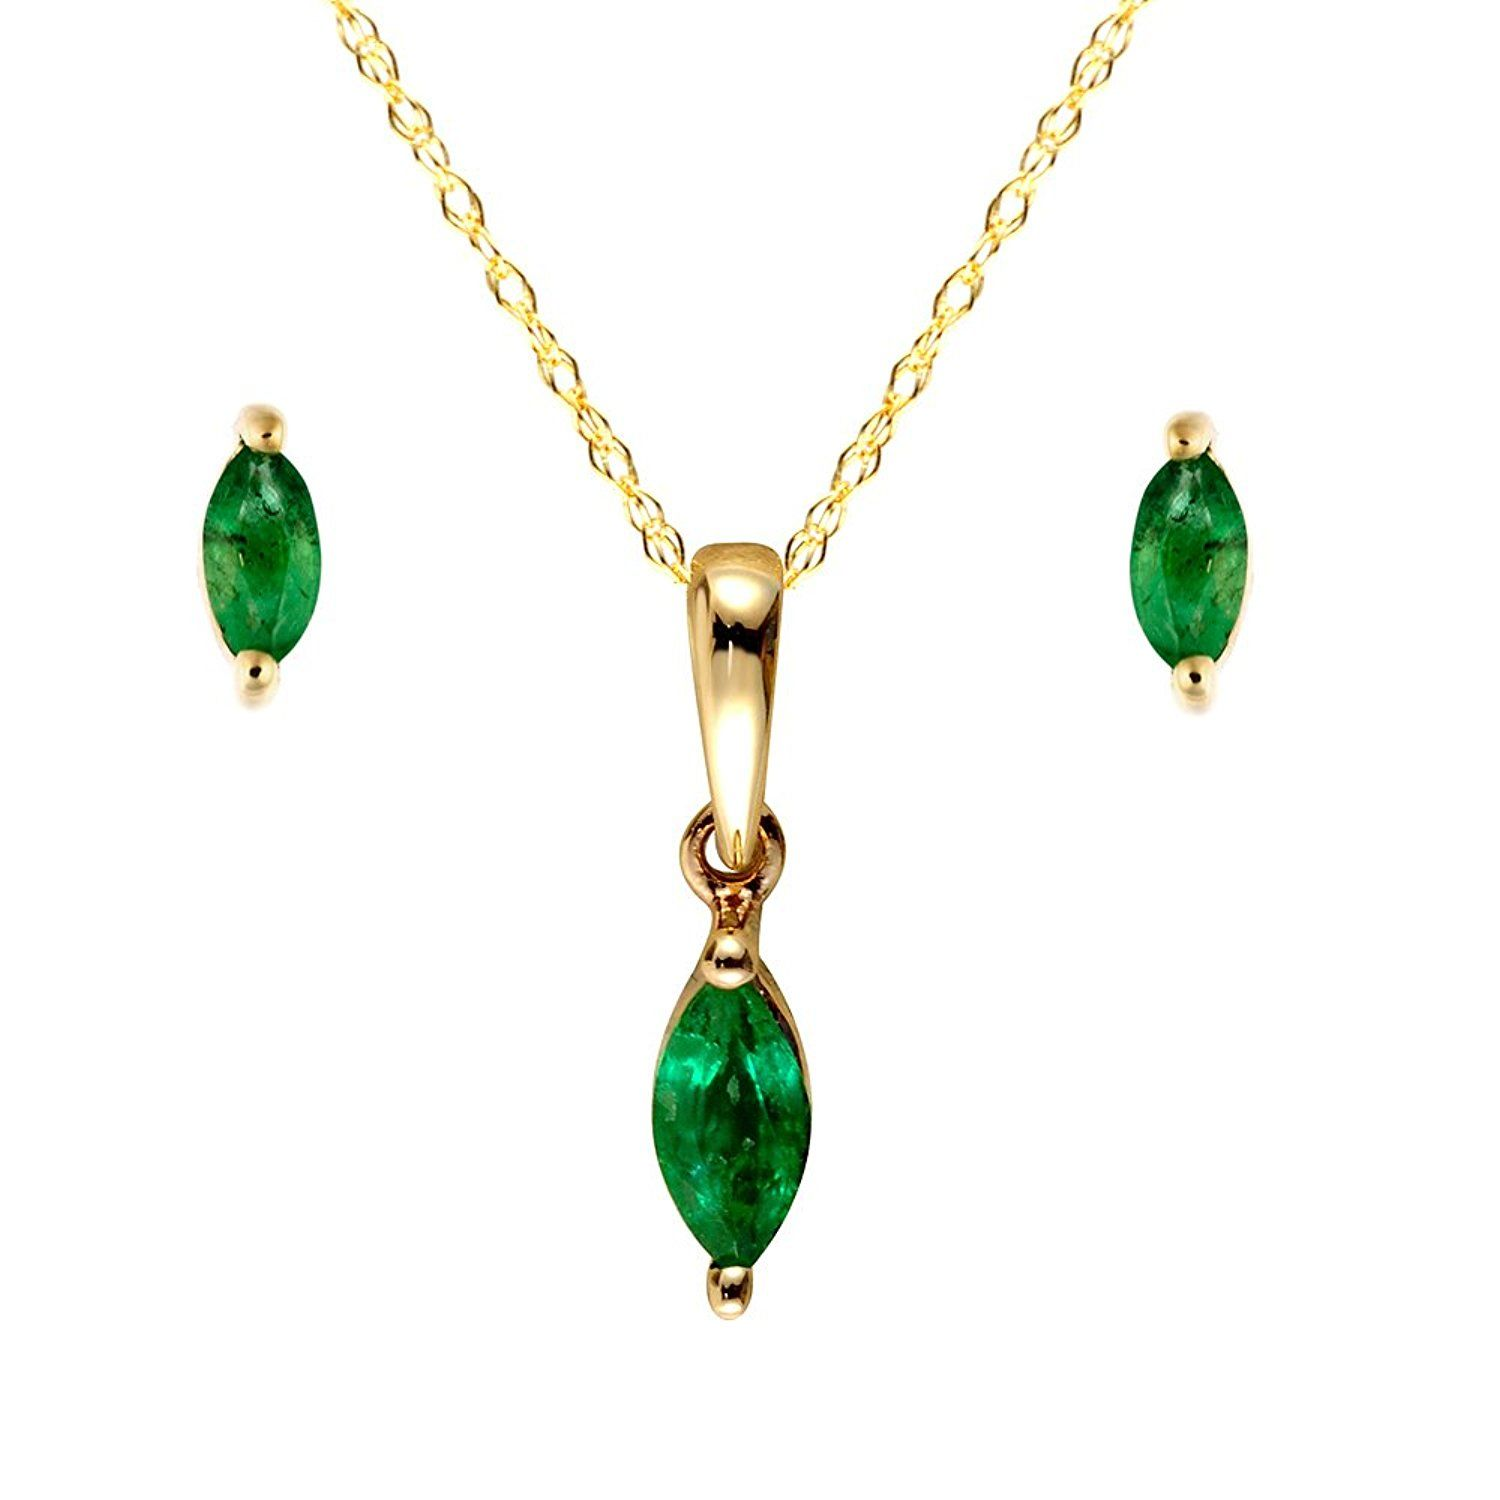 Ivy gems ct yellow gold emerald marquise earrings and pendant set